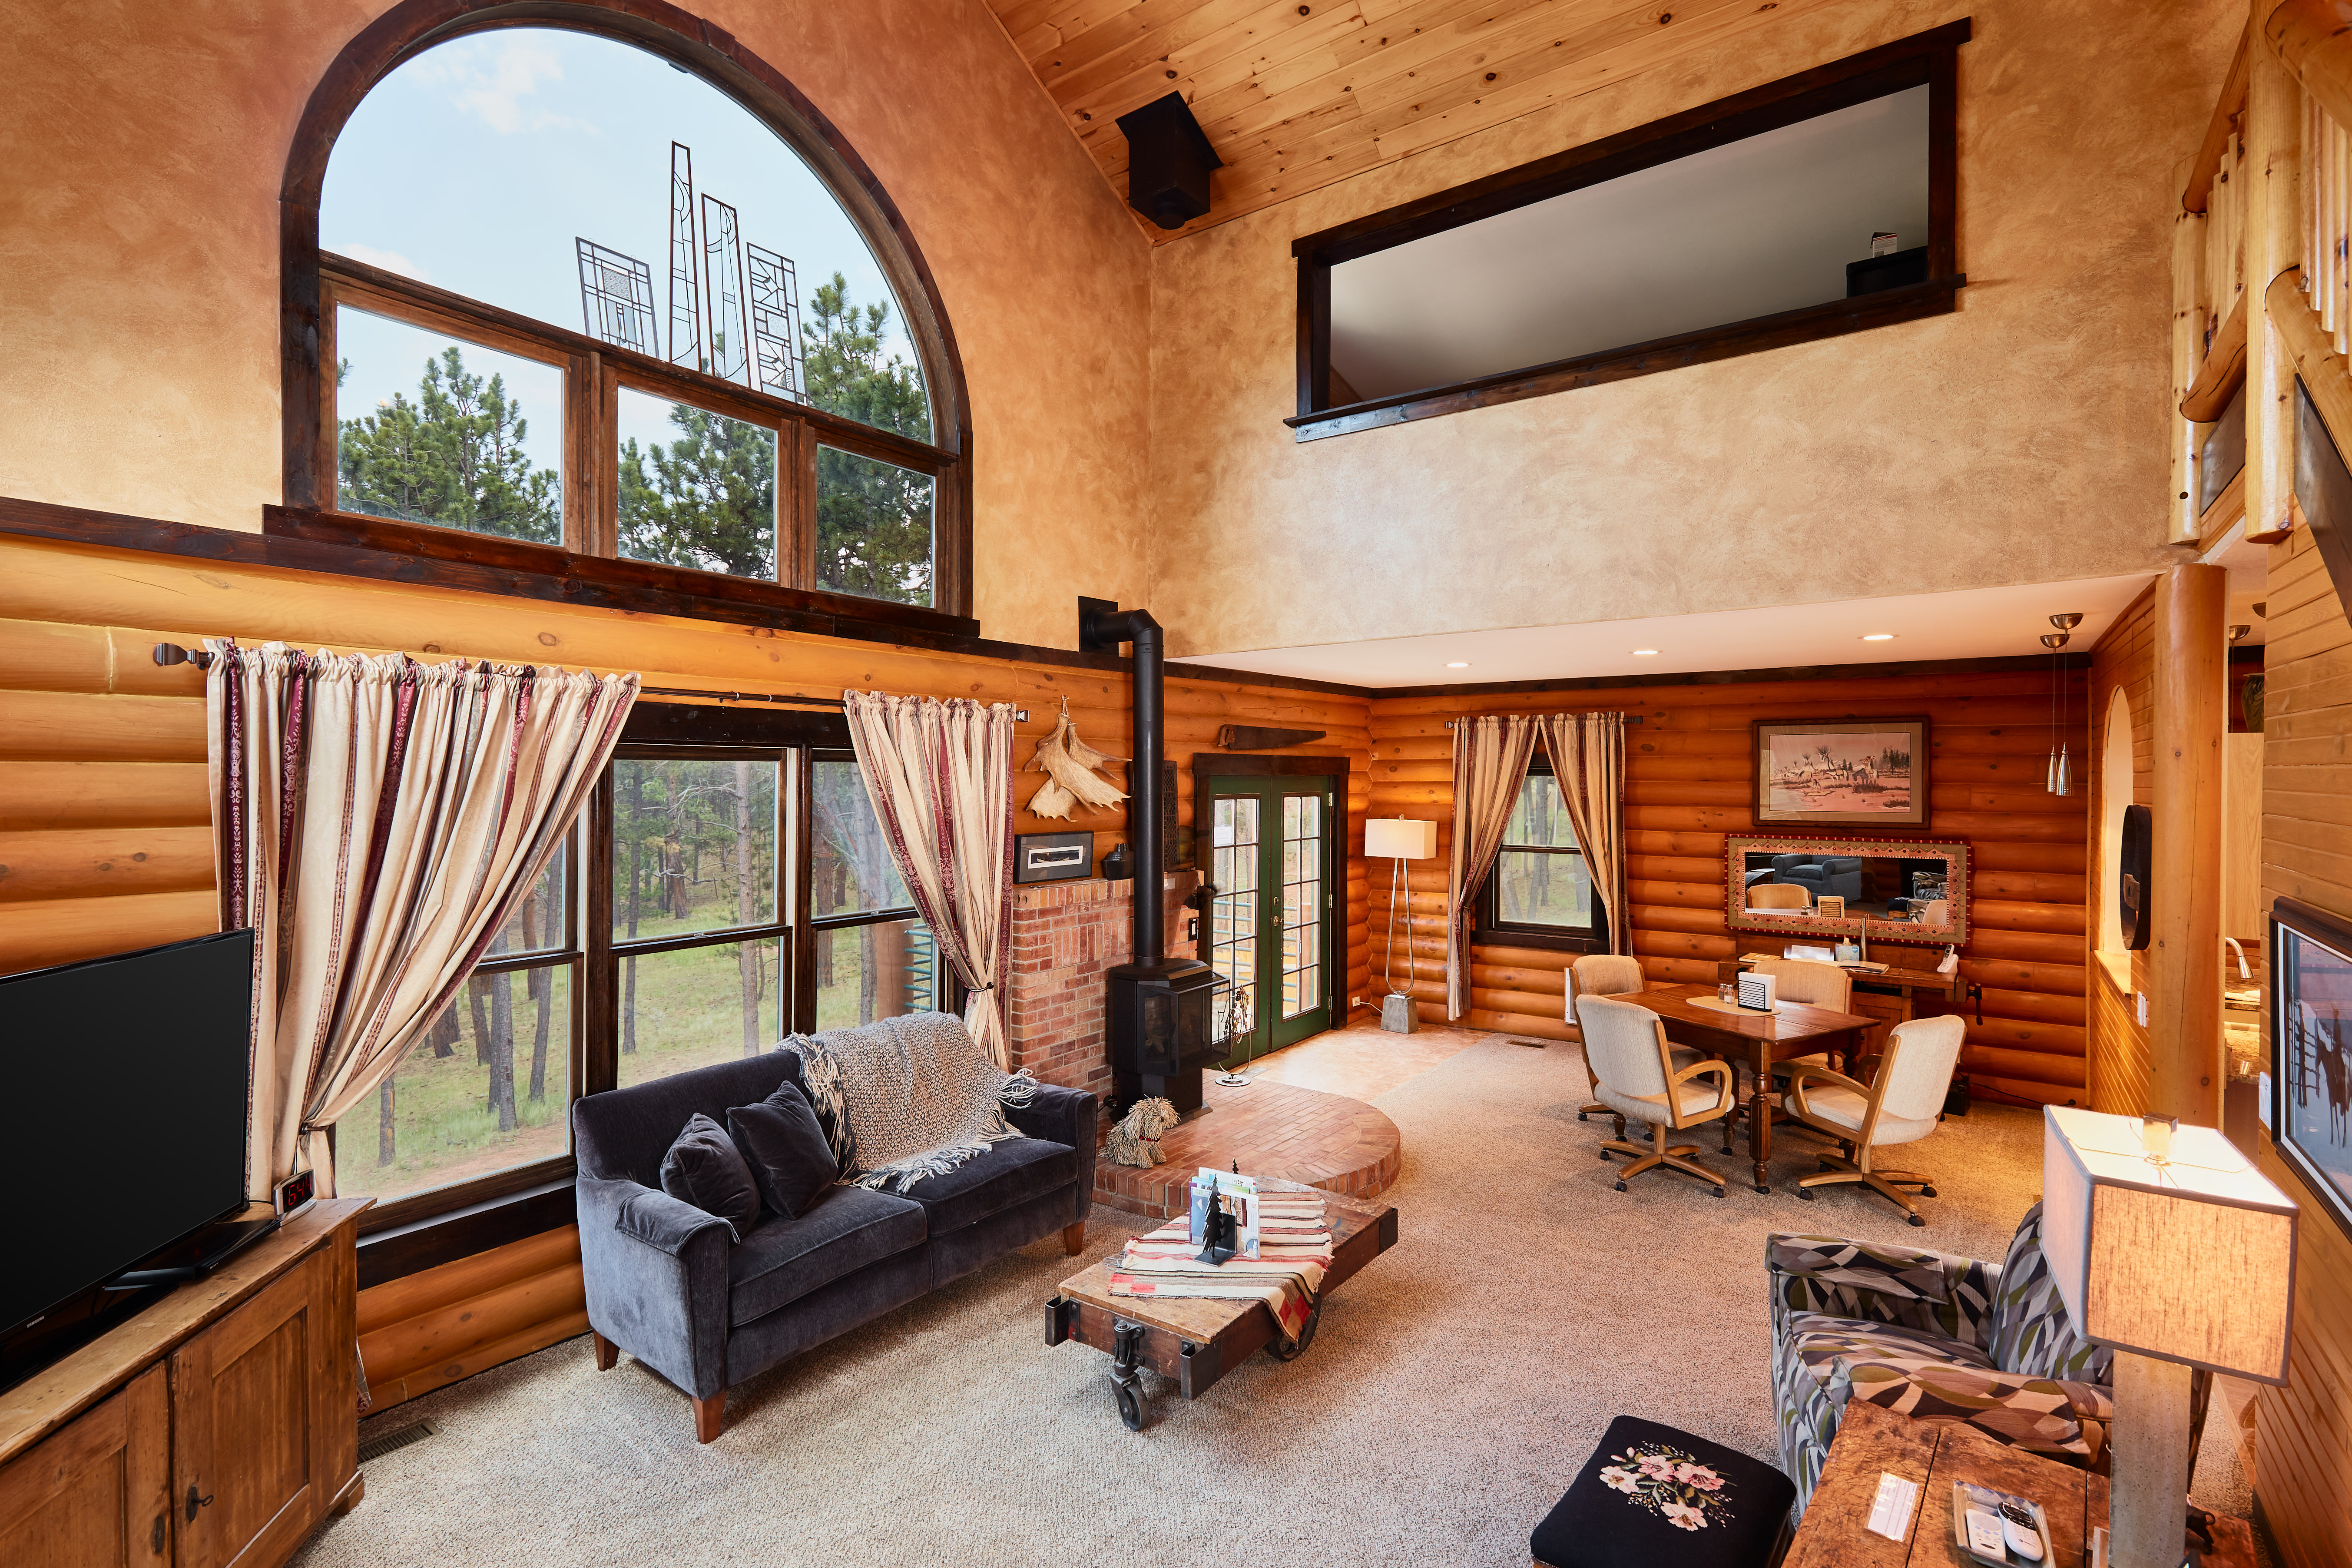 A gas fireplace keeps the room warm and cozy. French doors lead out to the deck with the grill.